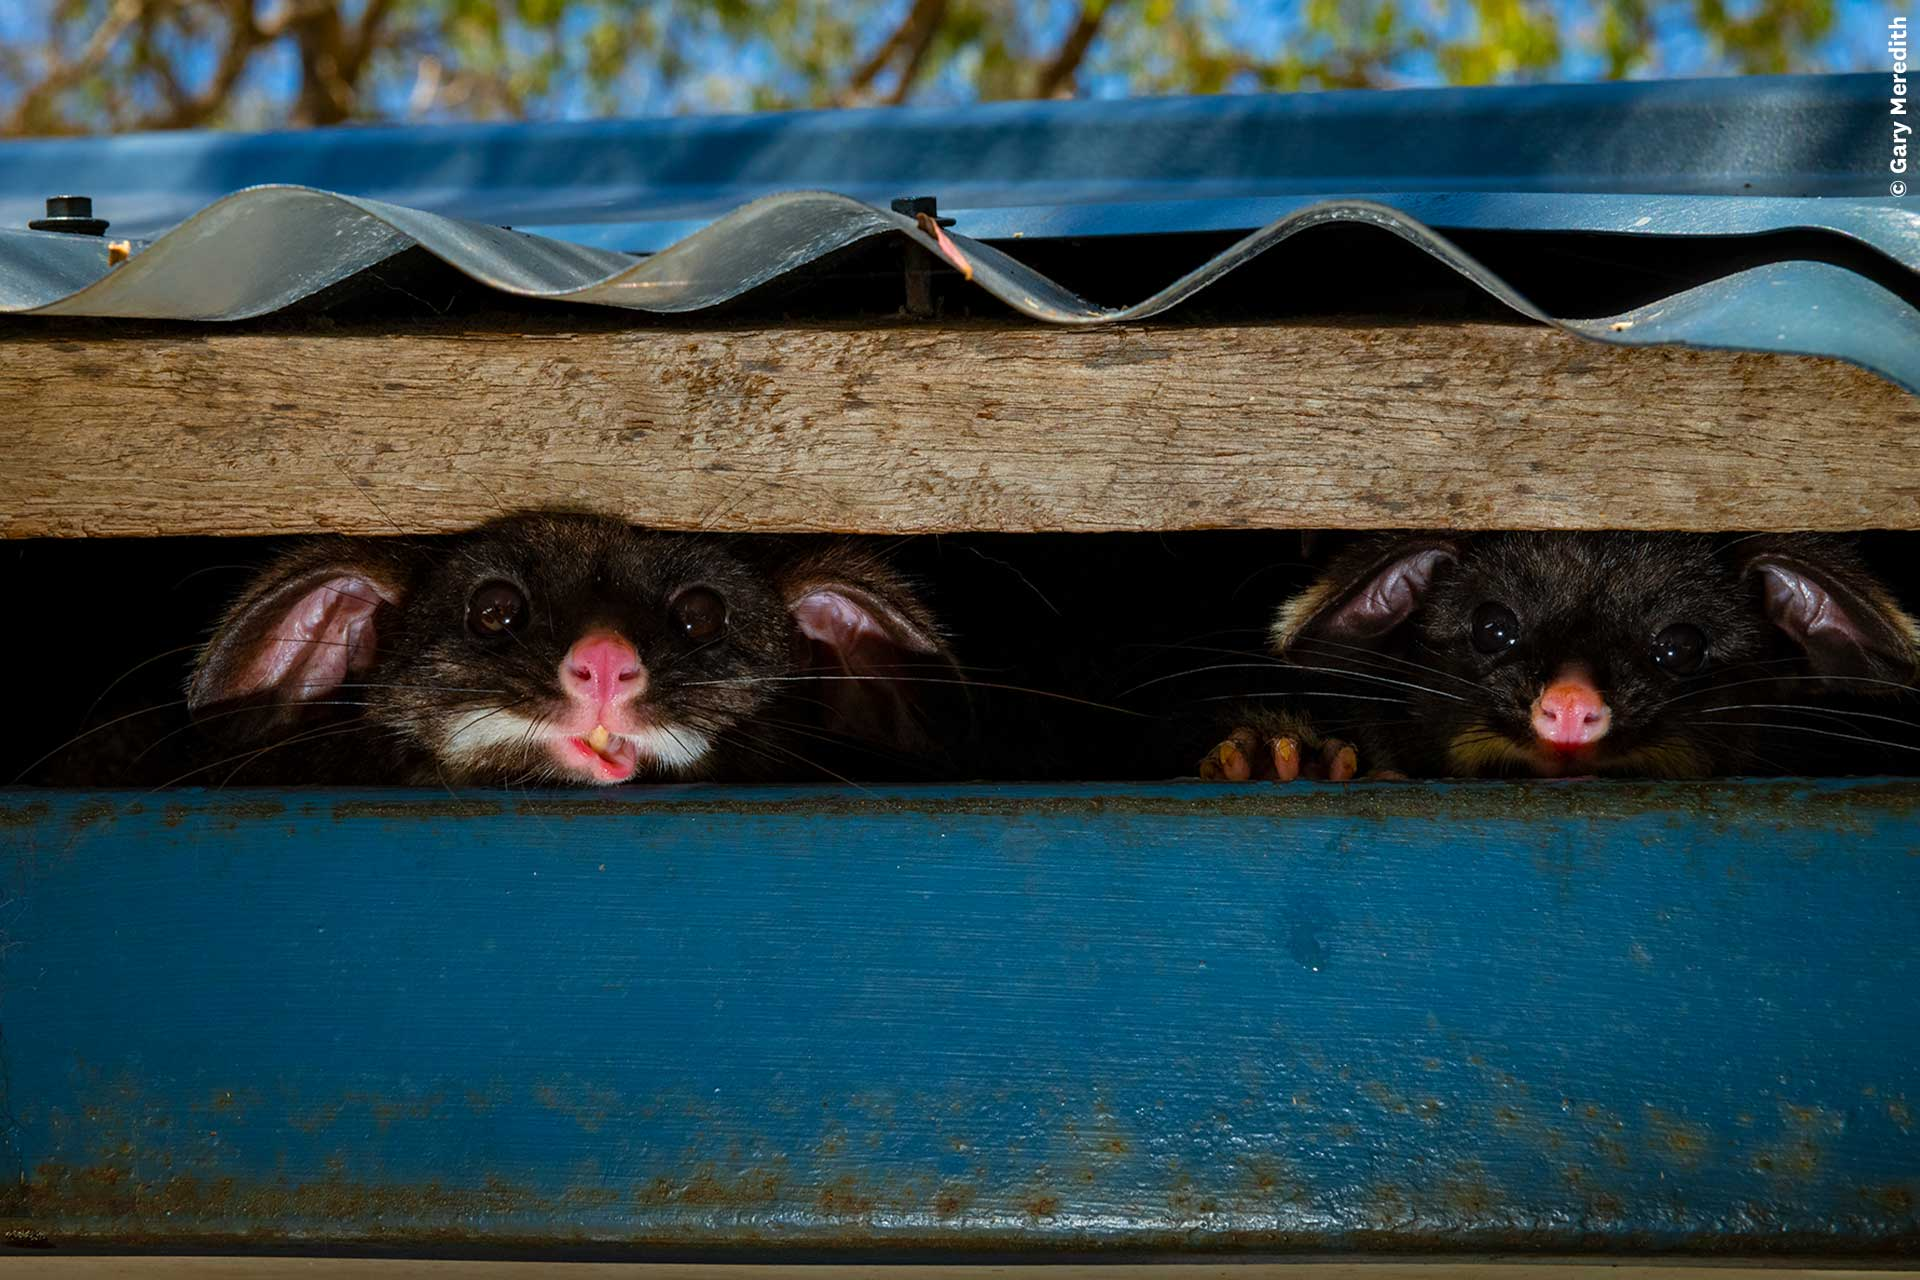 Two possums stare out from under a roof